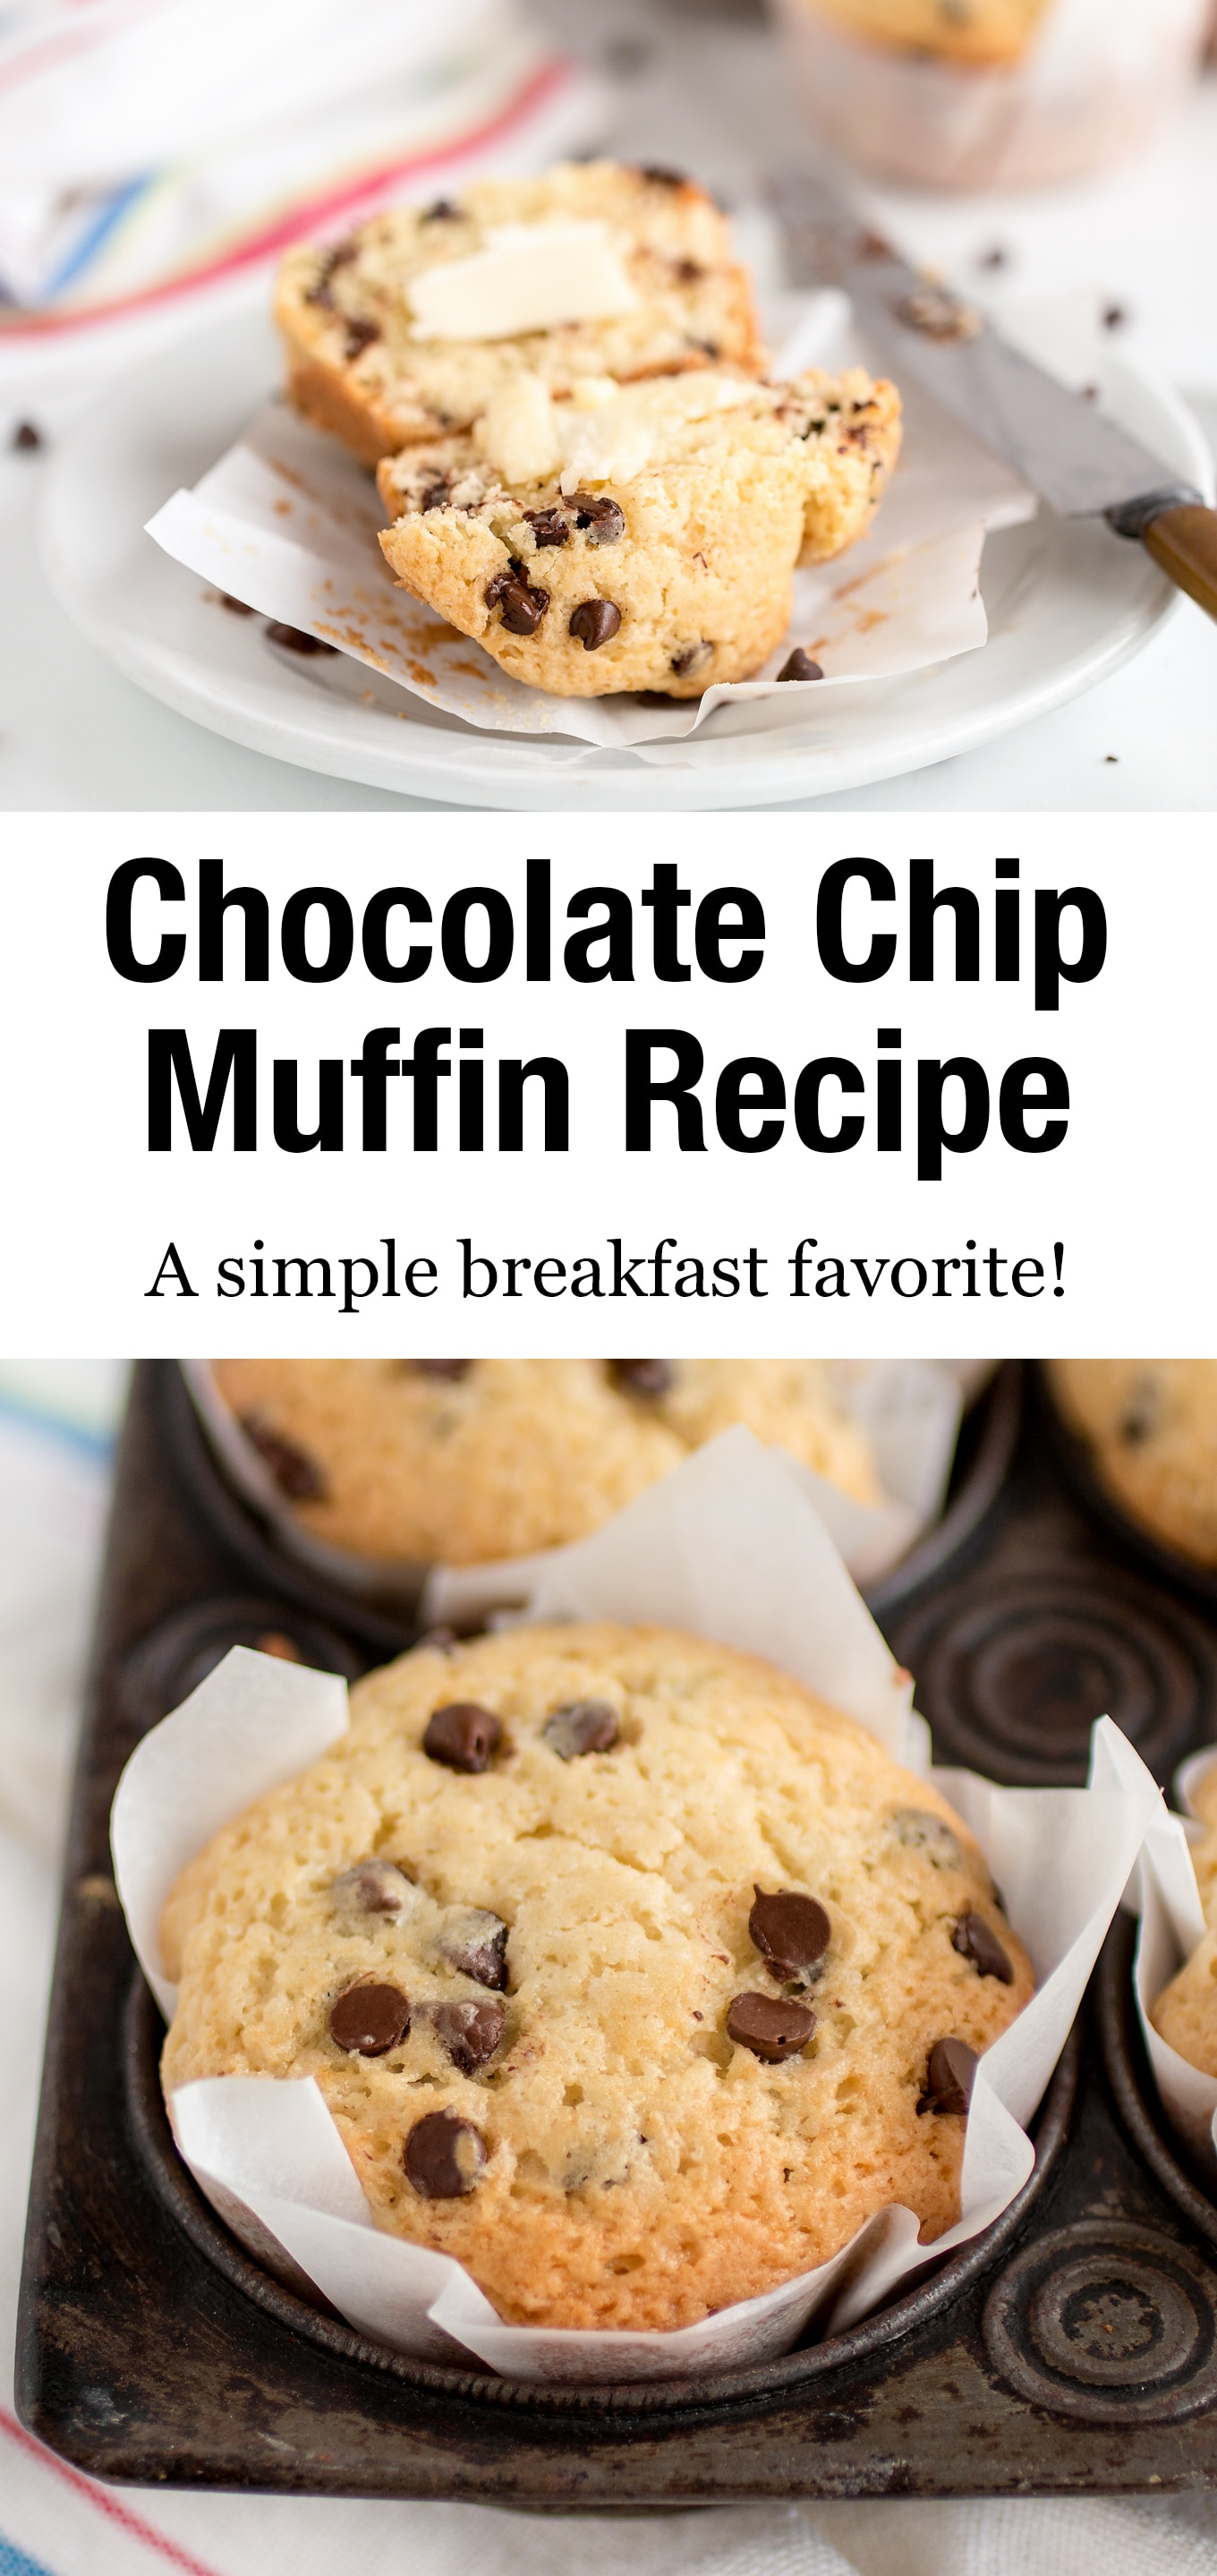 Best paired with a glass of ice-cold milk and smeared with salted butter, these easy Chocolate Chip Muffins taste delicious warm and fresh from the oven. #chocolatechipmuffinrecipe #easy #breakfast via @firefliesandmudpies